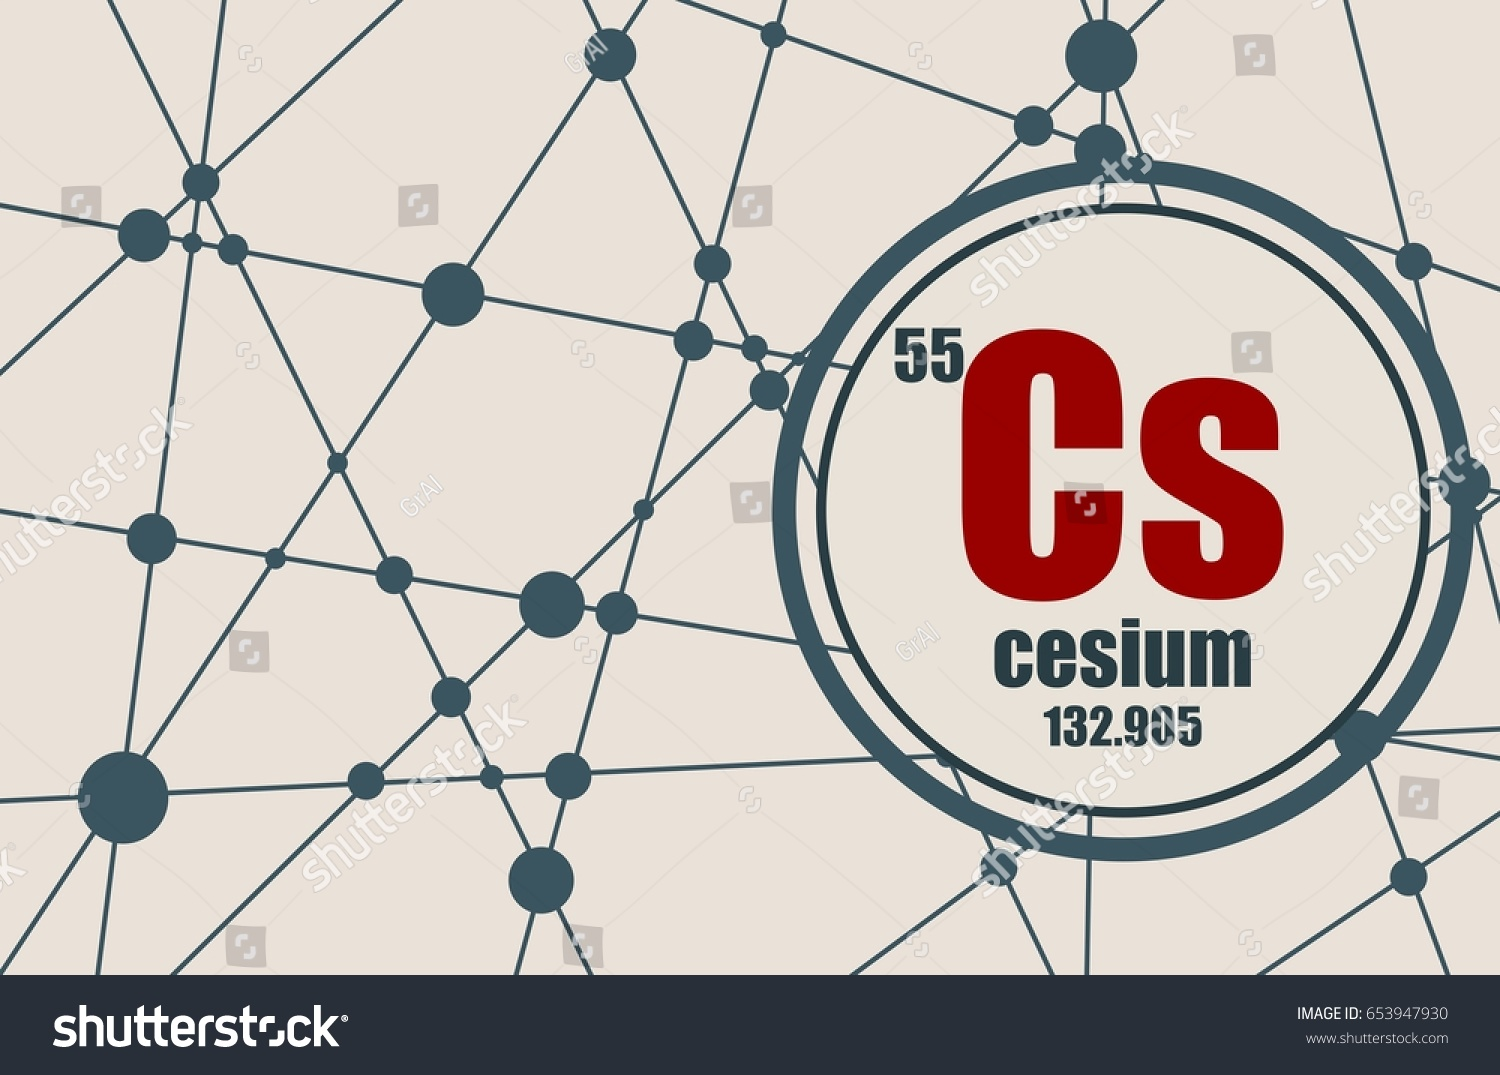 Cesium chemical element sign atomic number stock vector 653947930 cesium chemical element sign with atomic number and atomic weight chemical element of periodic gamestrikefo Choice Image